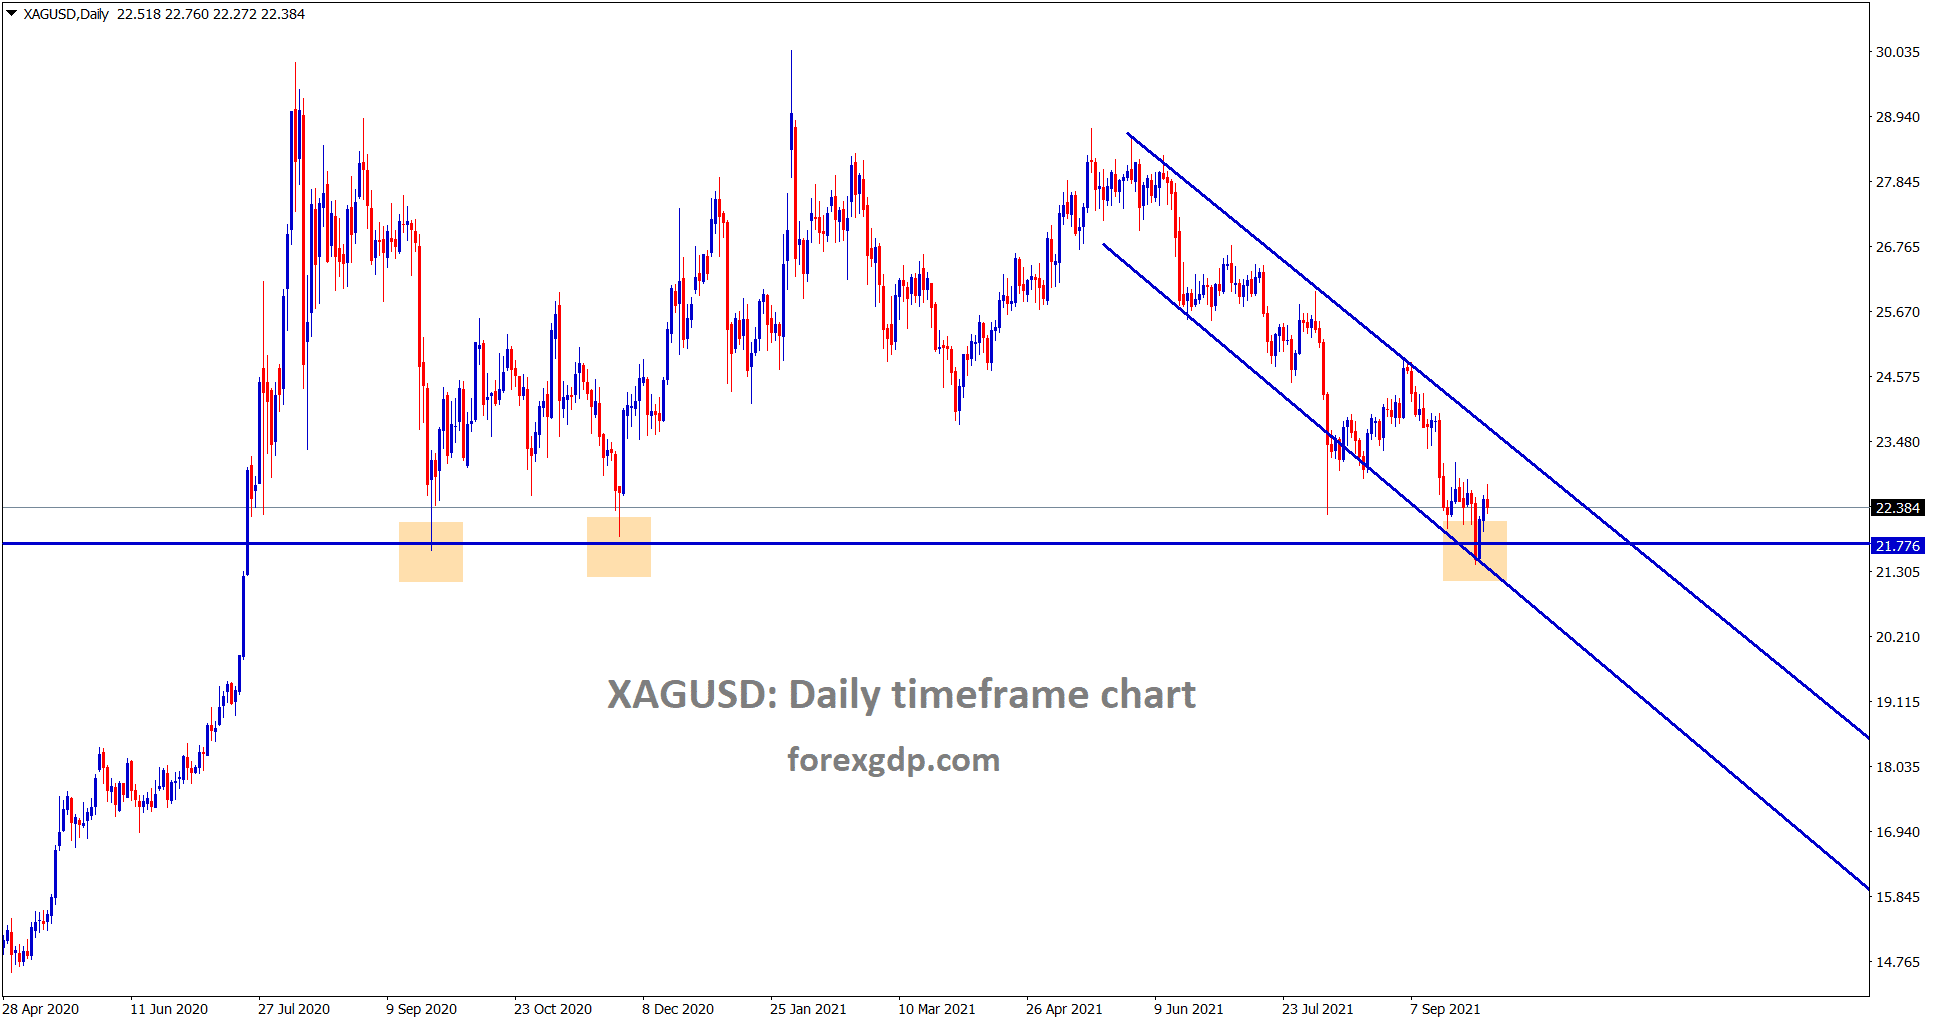 Silver XAGUSD is rebounding from the suppport and lower low level of a descending channel